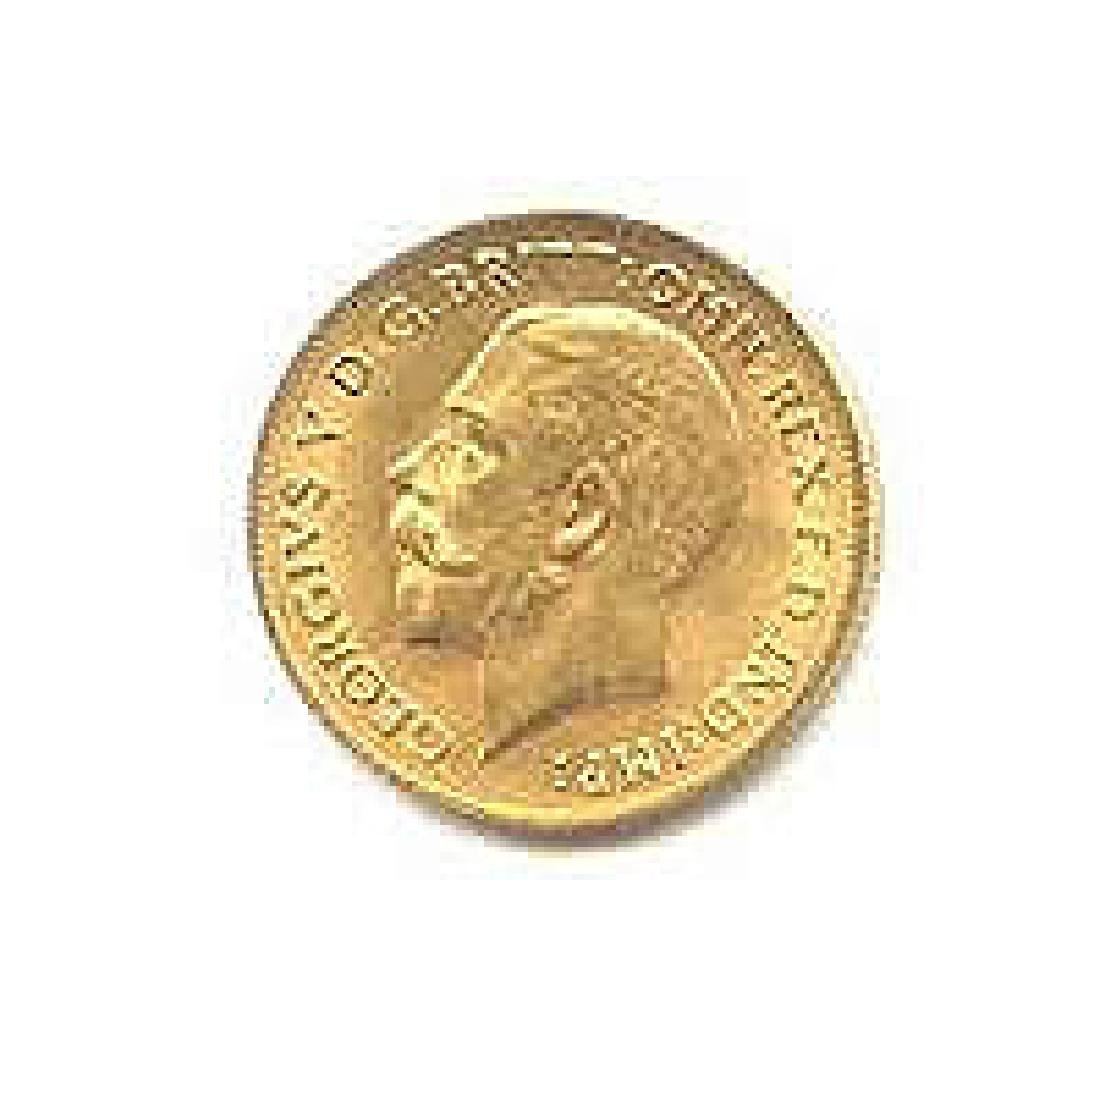 English Half Sovereign Gold Coin